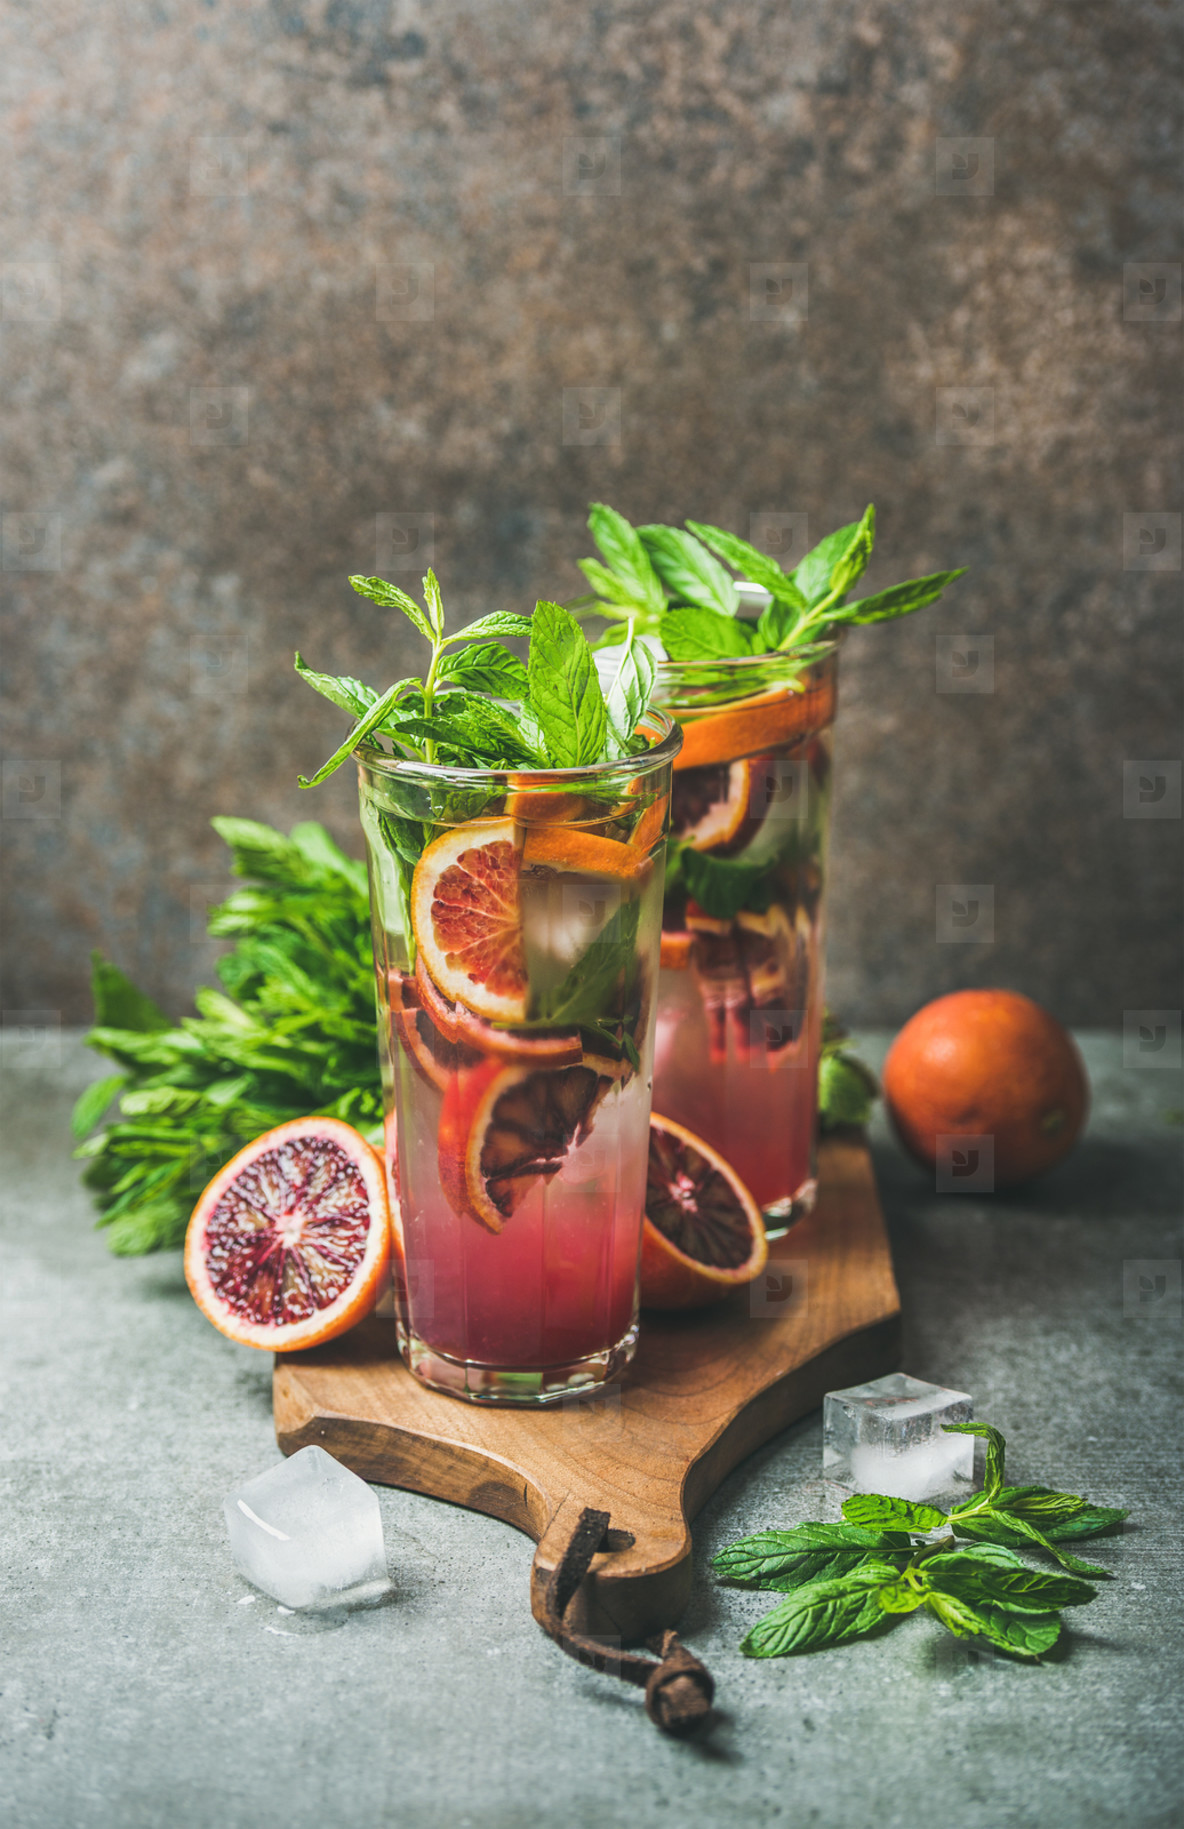 Blood orange citrus lemonade with mint and ice on board